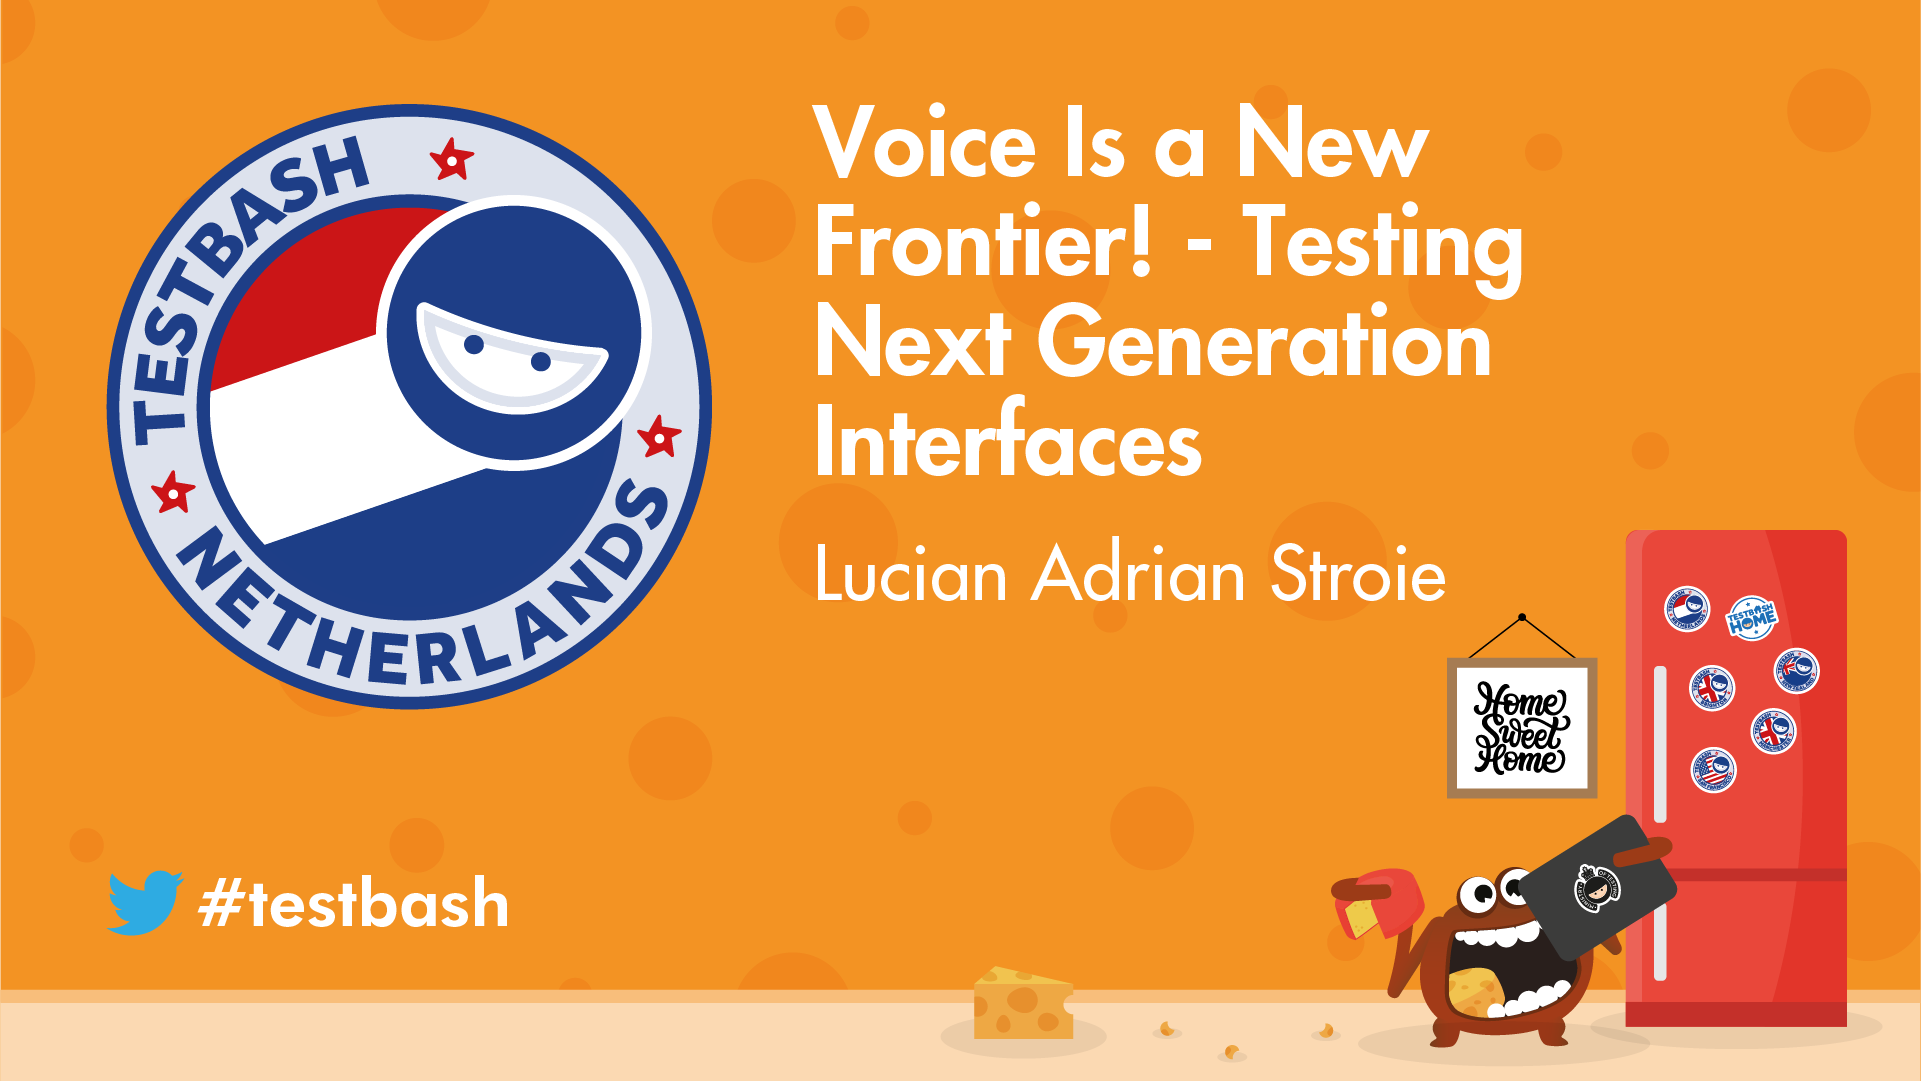 Voice Is a New Frontier! Testing next Generation Interfaces - Lucian Adrian Stroie